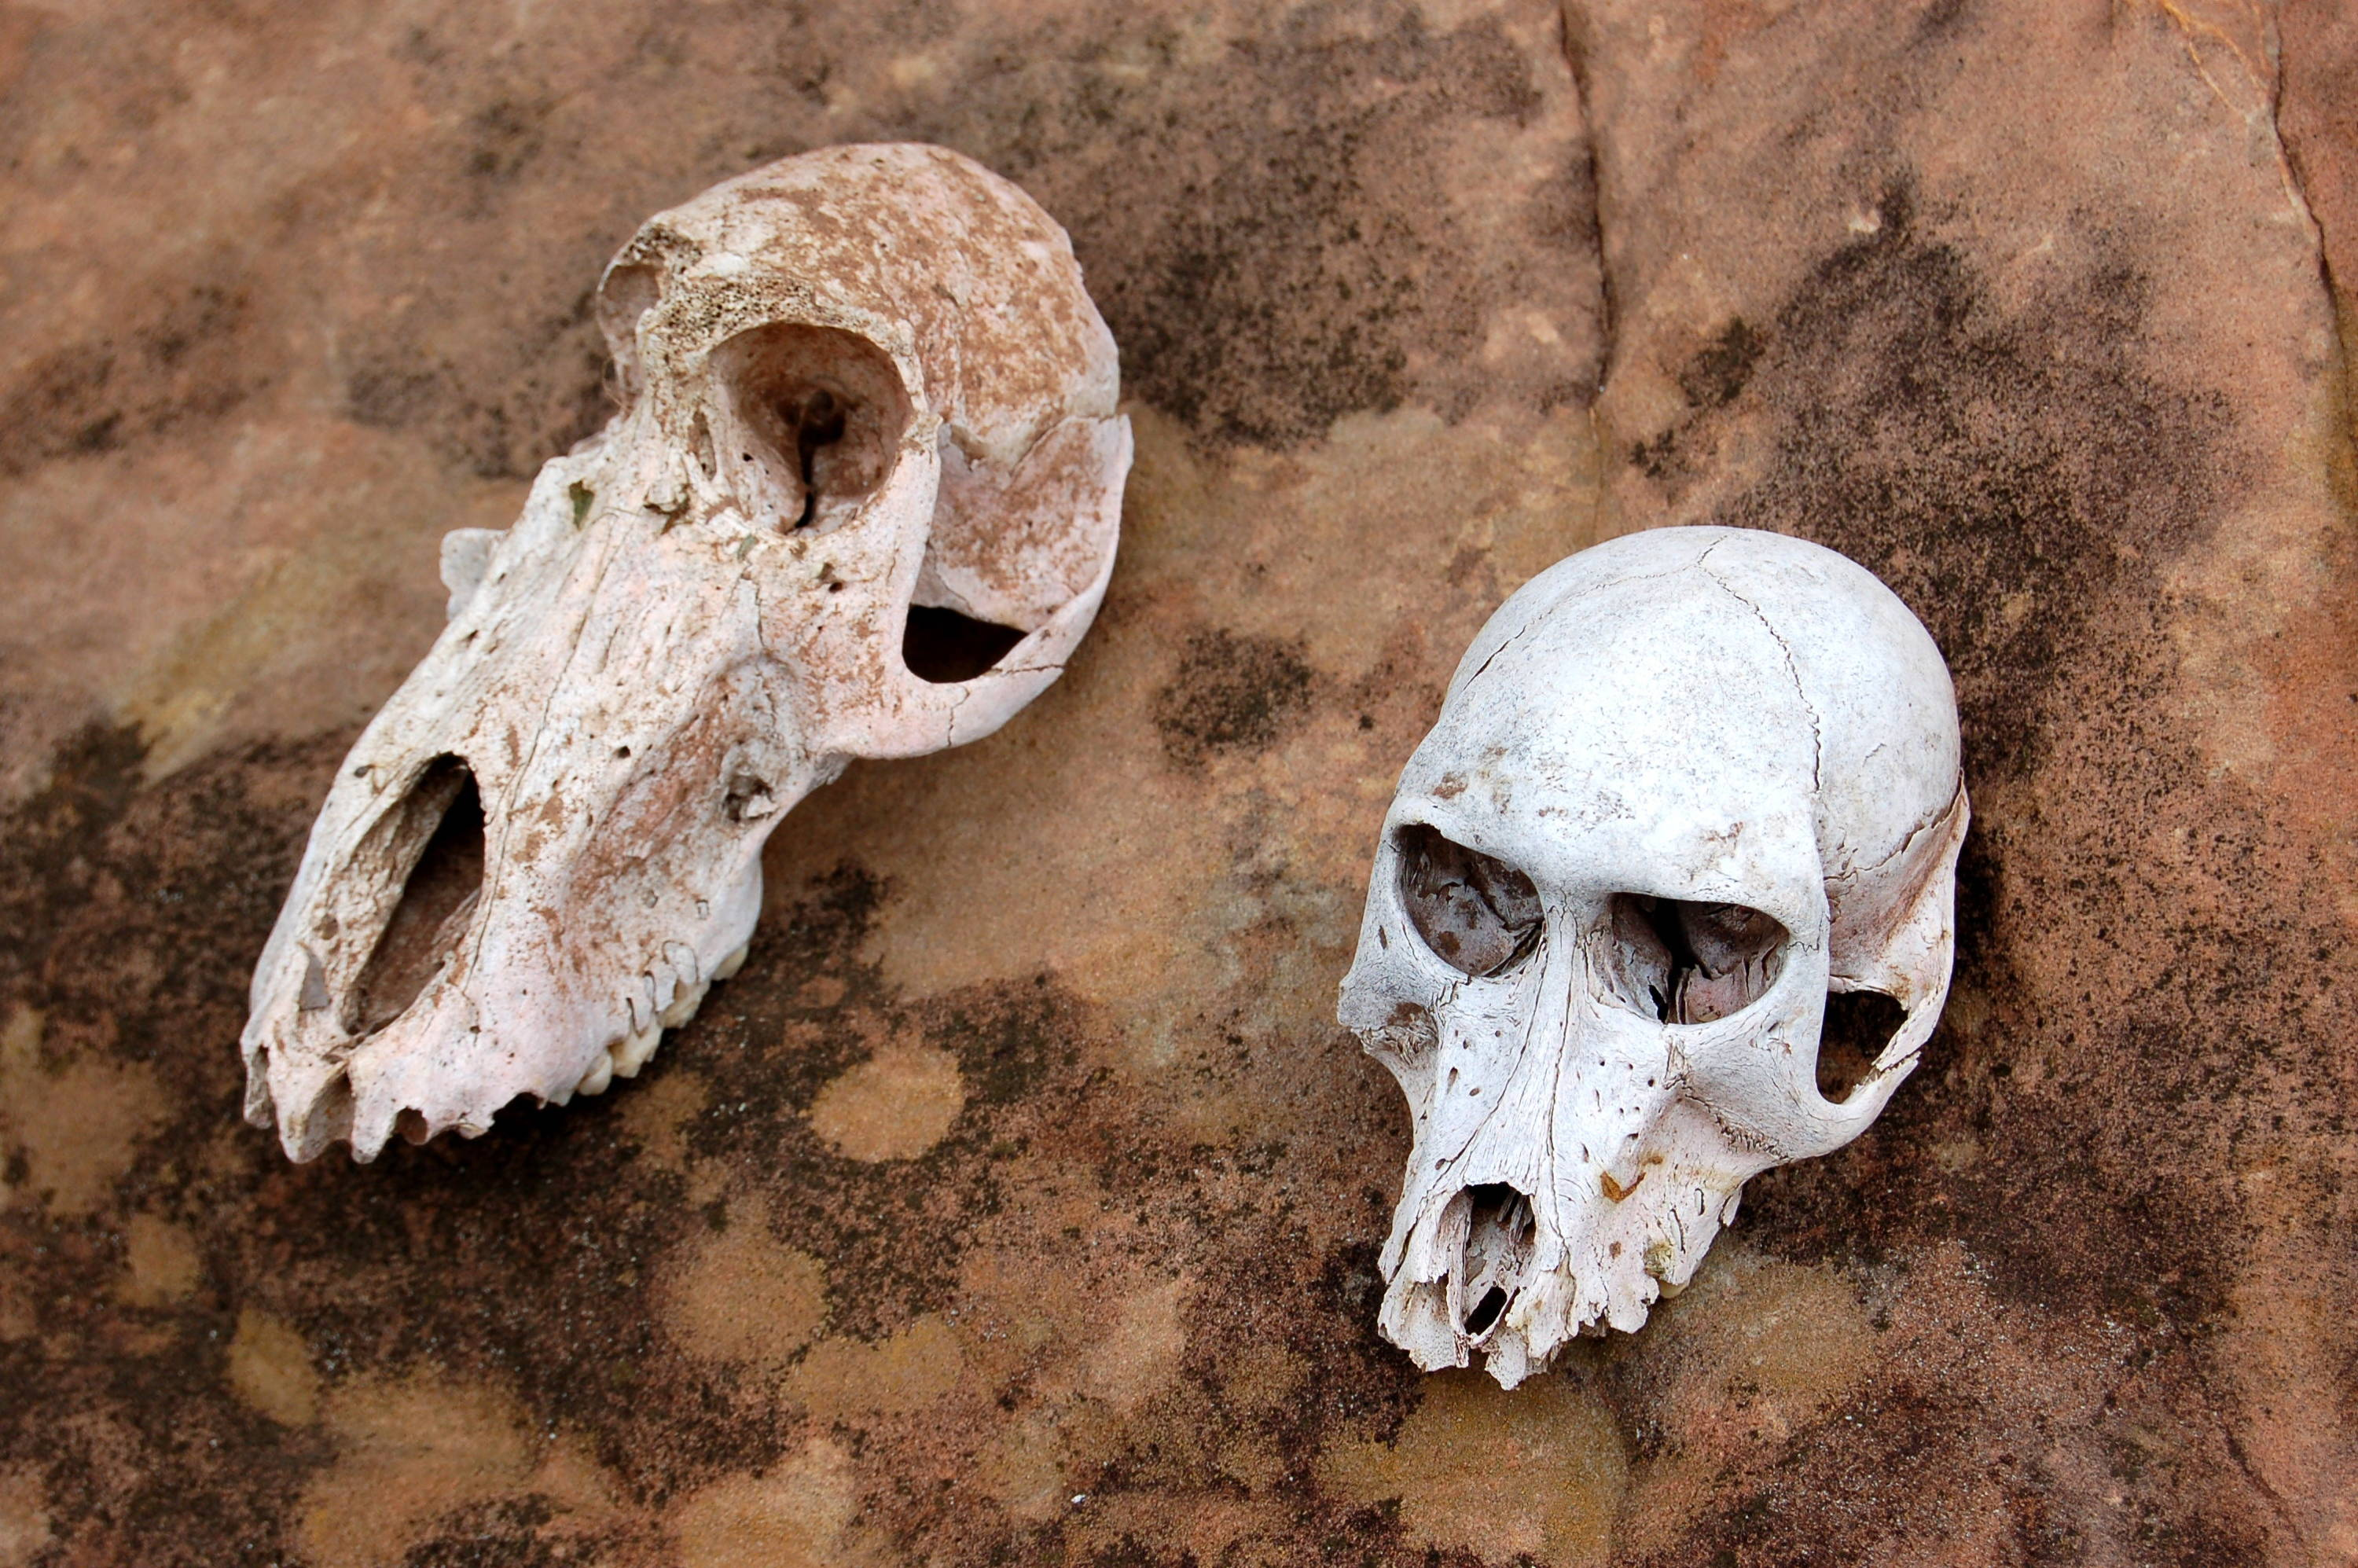 Two white animal skulls stand out against the brown rock they sit on